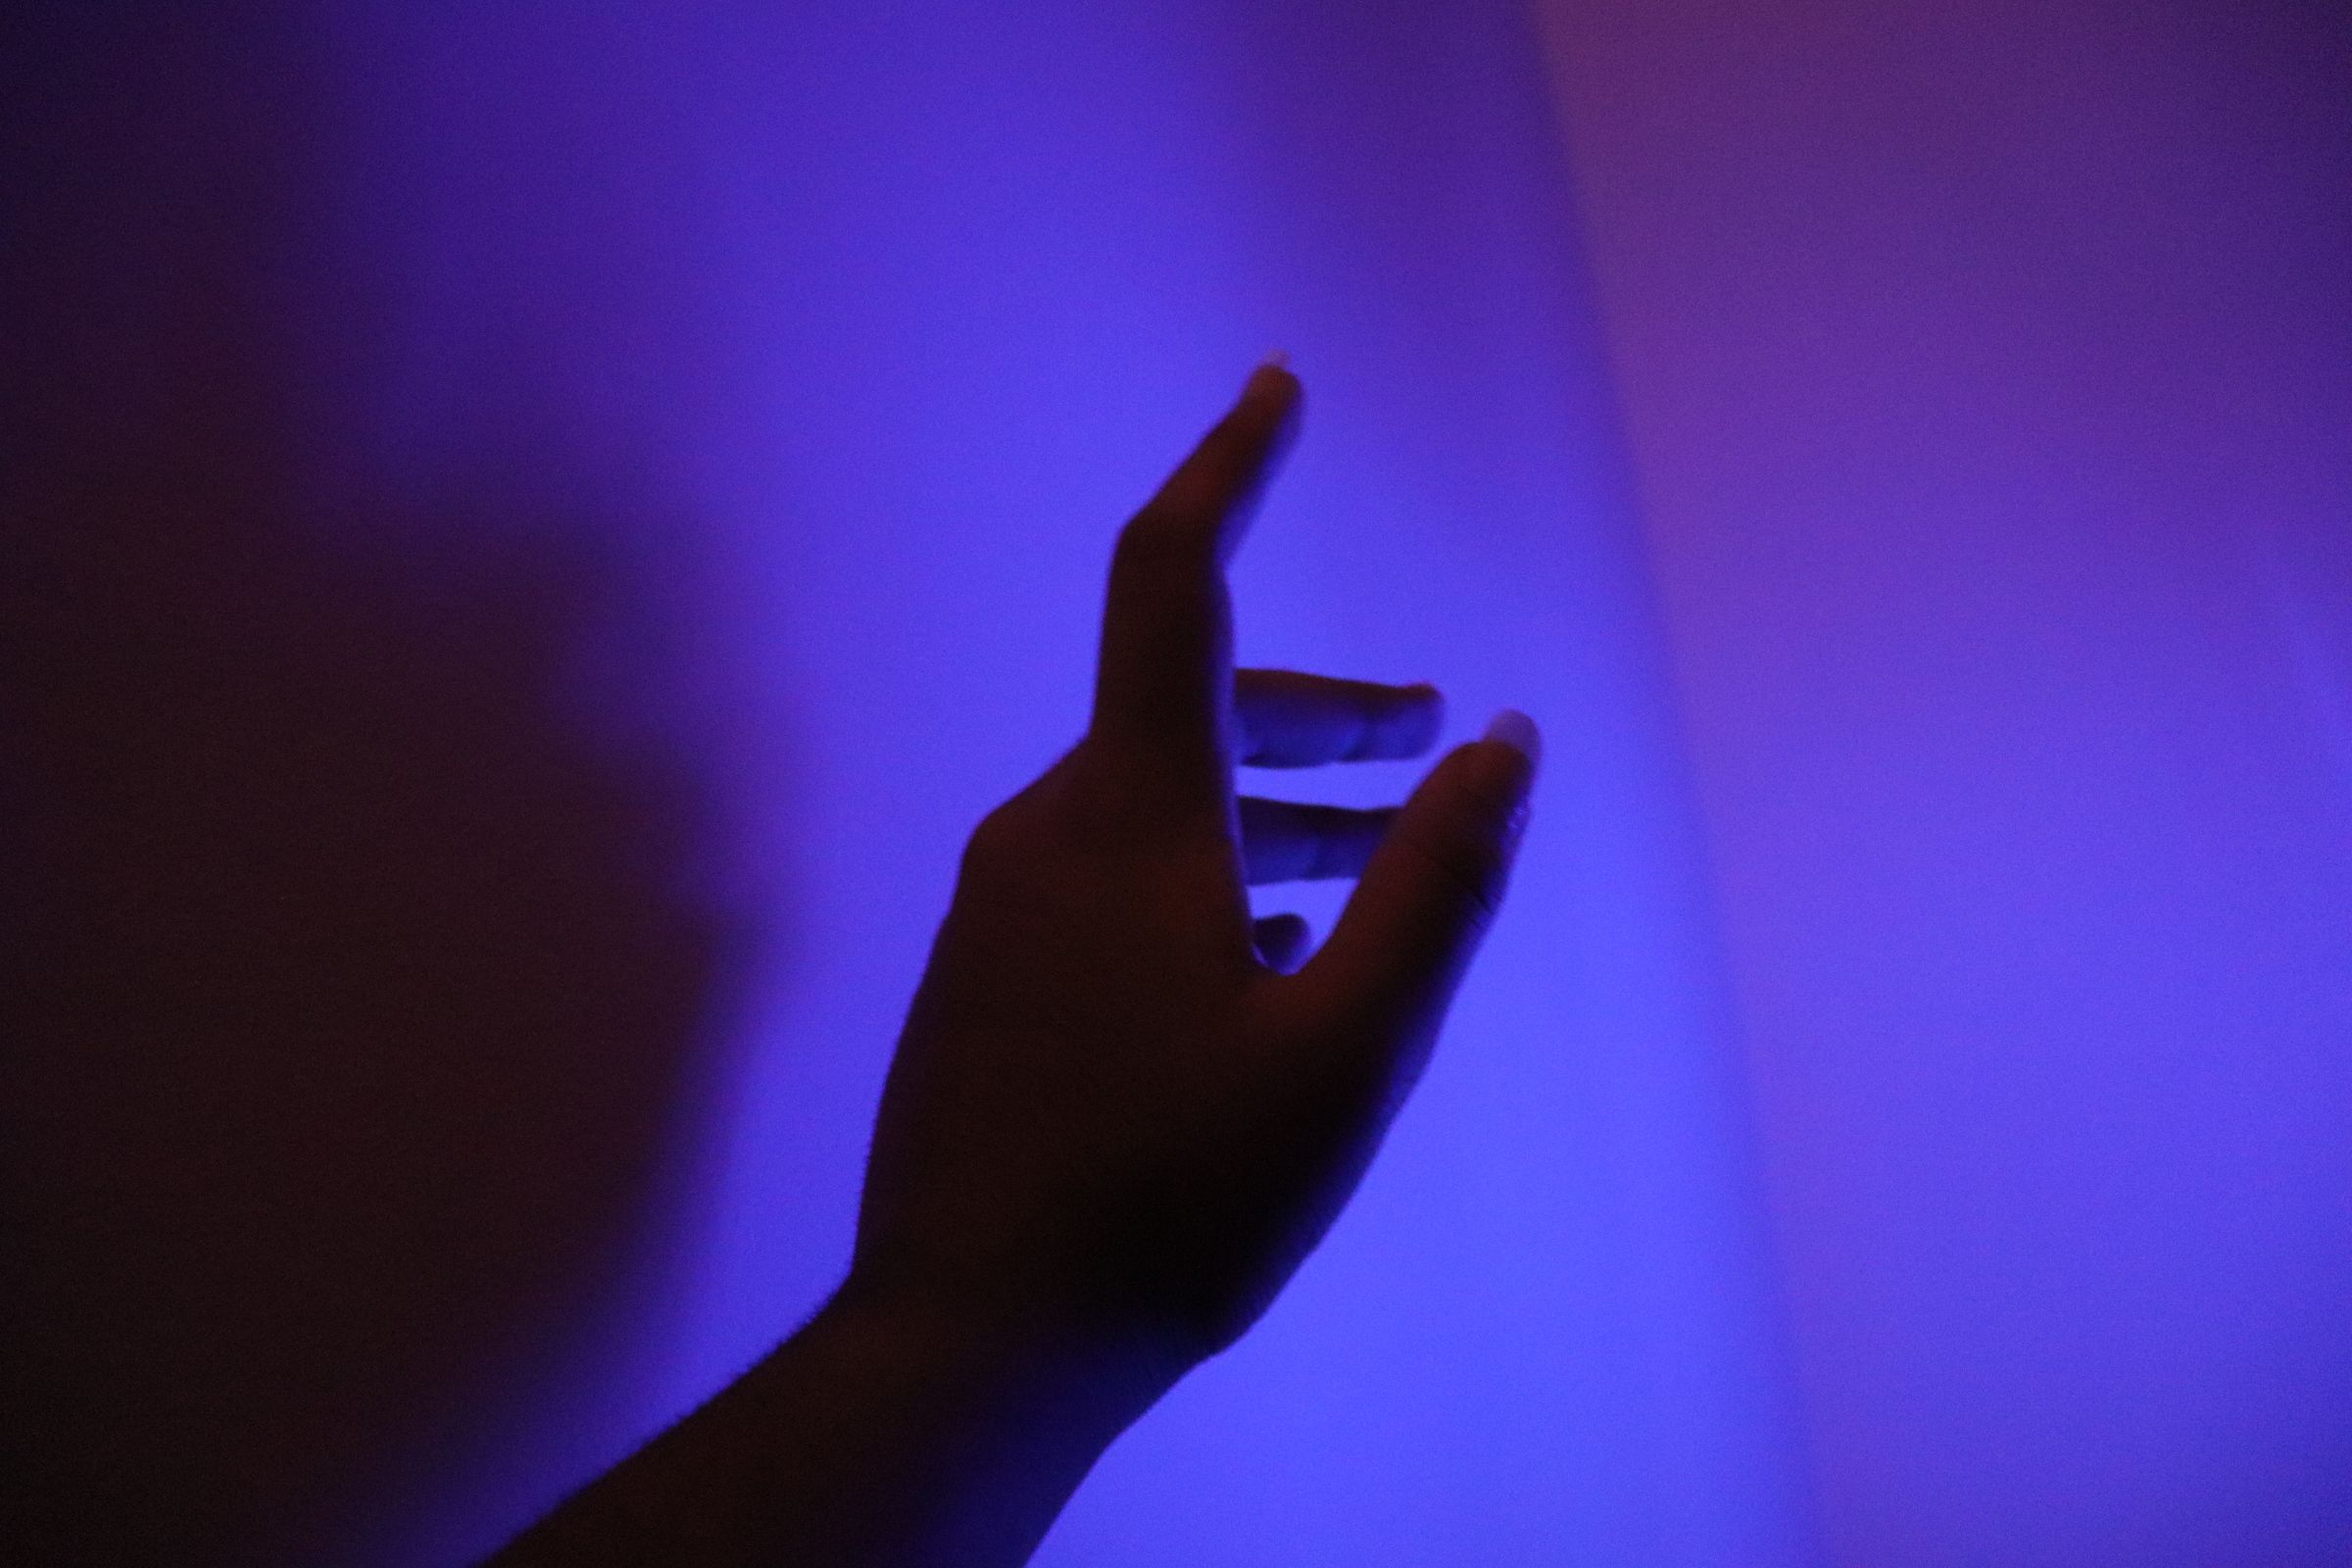 Aesthetics Hand Tumblr Pinterest Purple Light Edgy